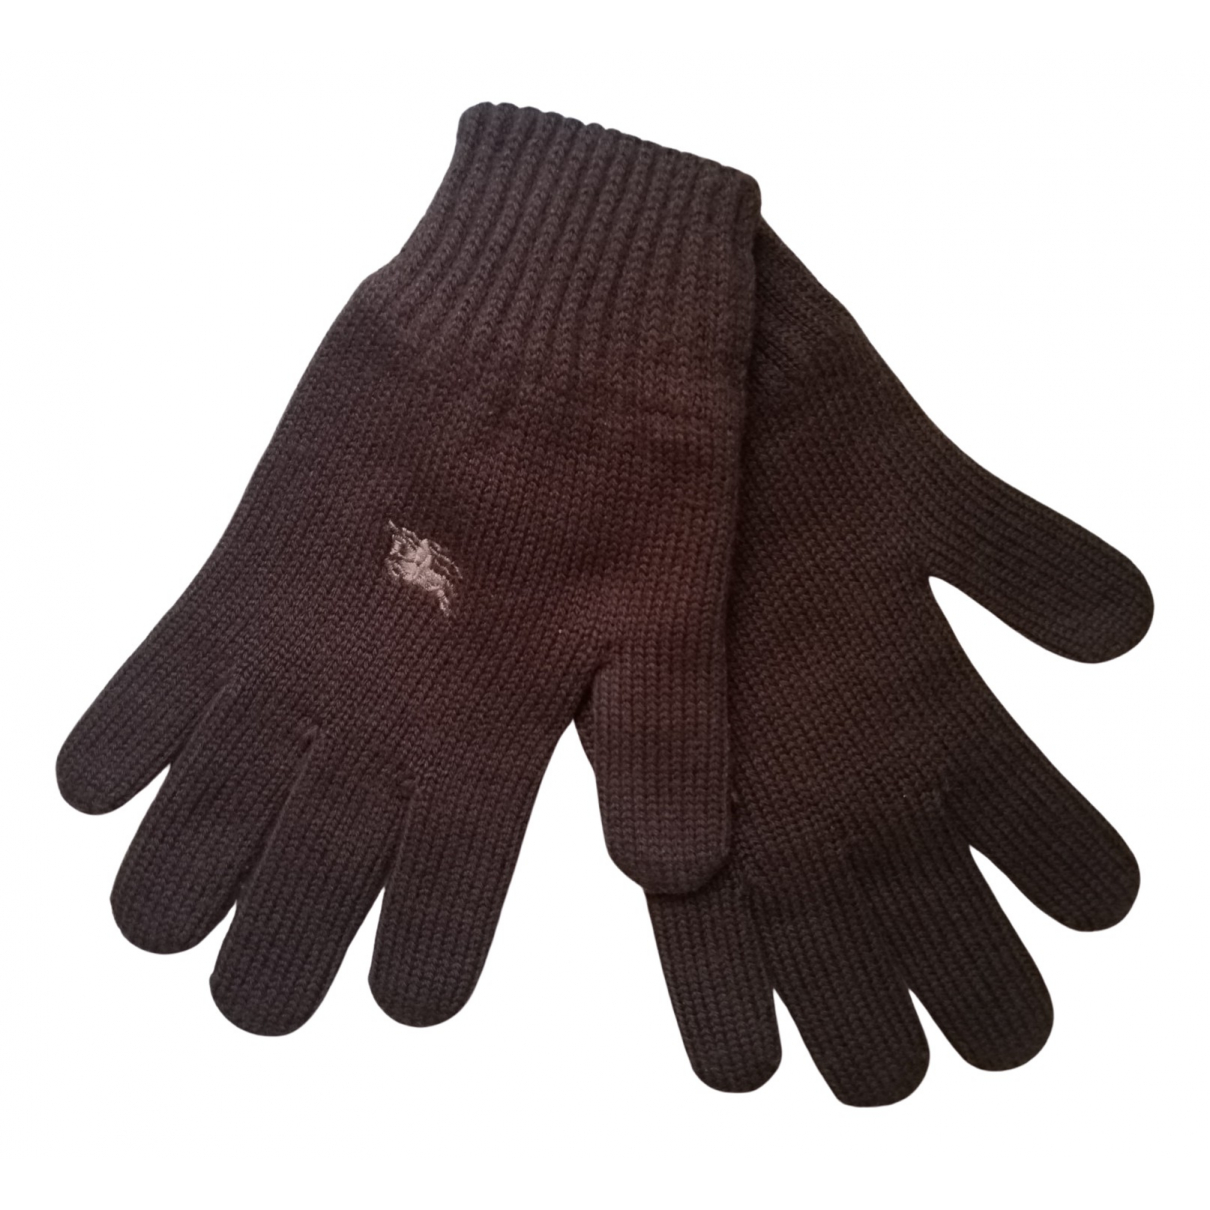 Burberry \N Brown Wool Gloves for Women XS International